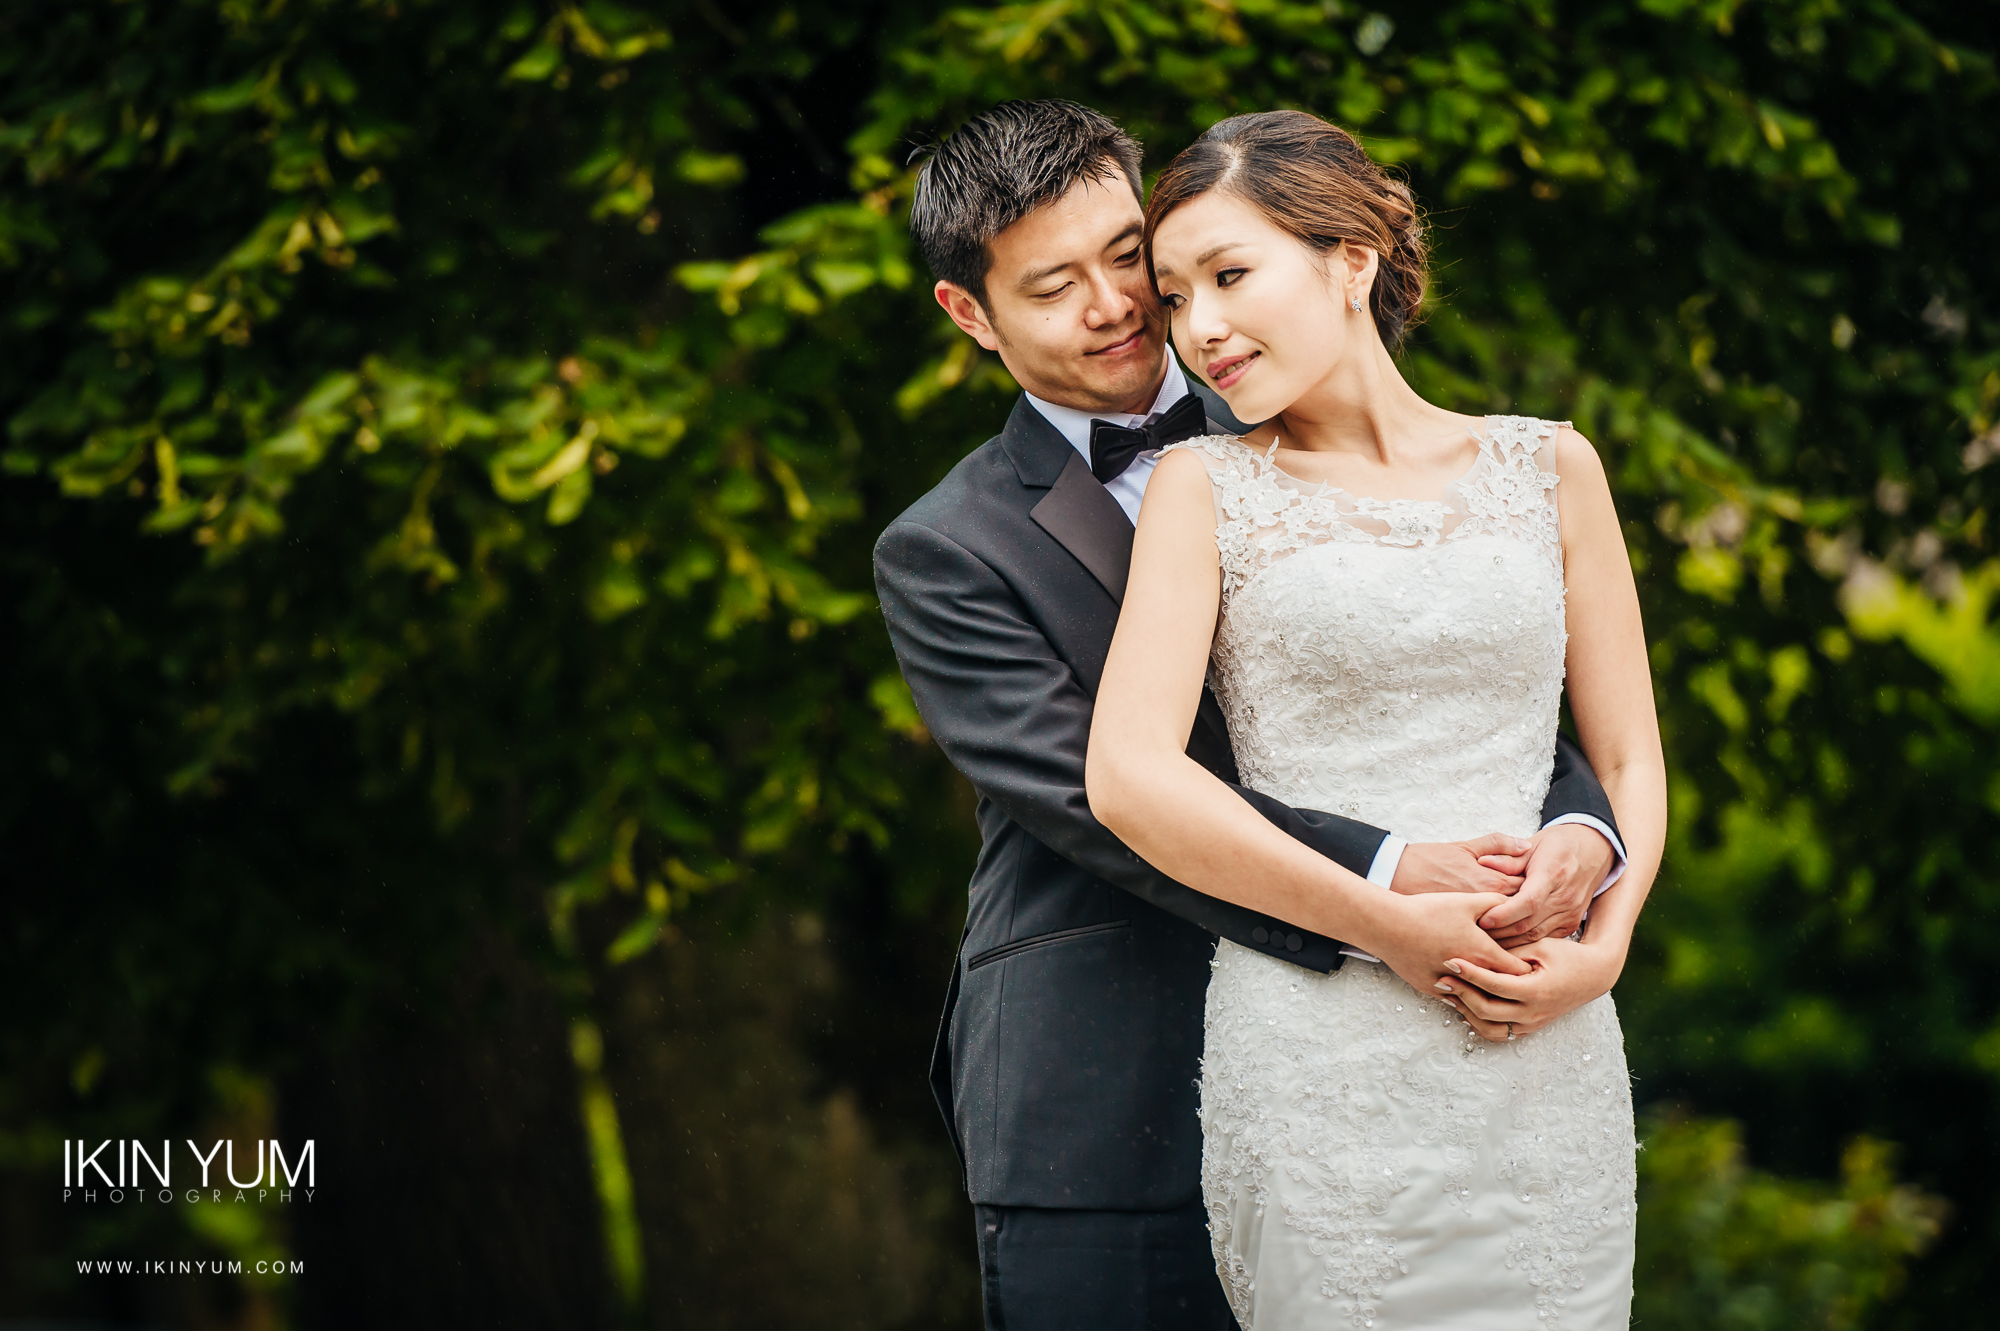 Carmen & Dennis Pre-Wedding Shoot - Ikin Yum Photography-009.jpg